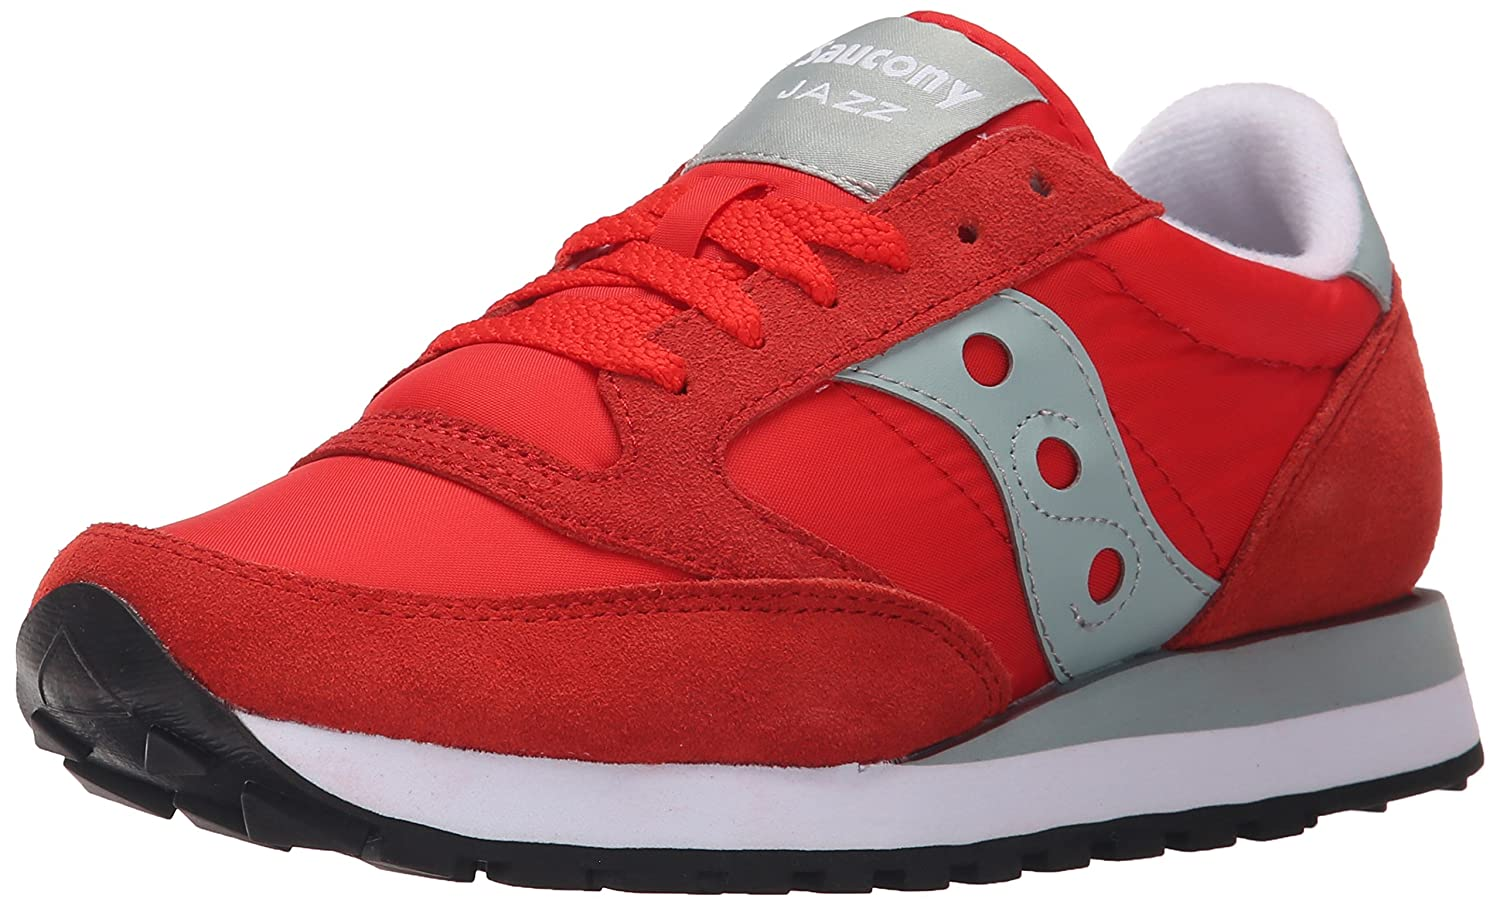 Saucony Originals Women's Jazz Original Sneaker B00XVAGPBO 8 B(M) US|Bright Red